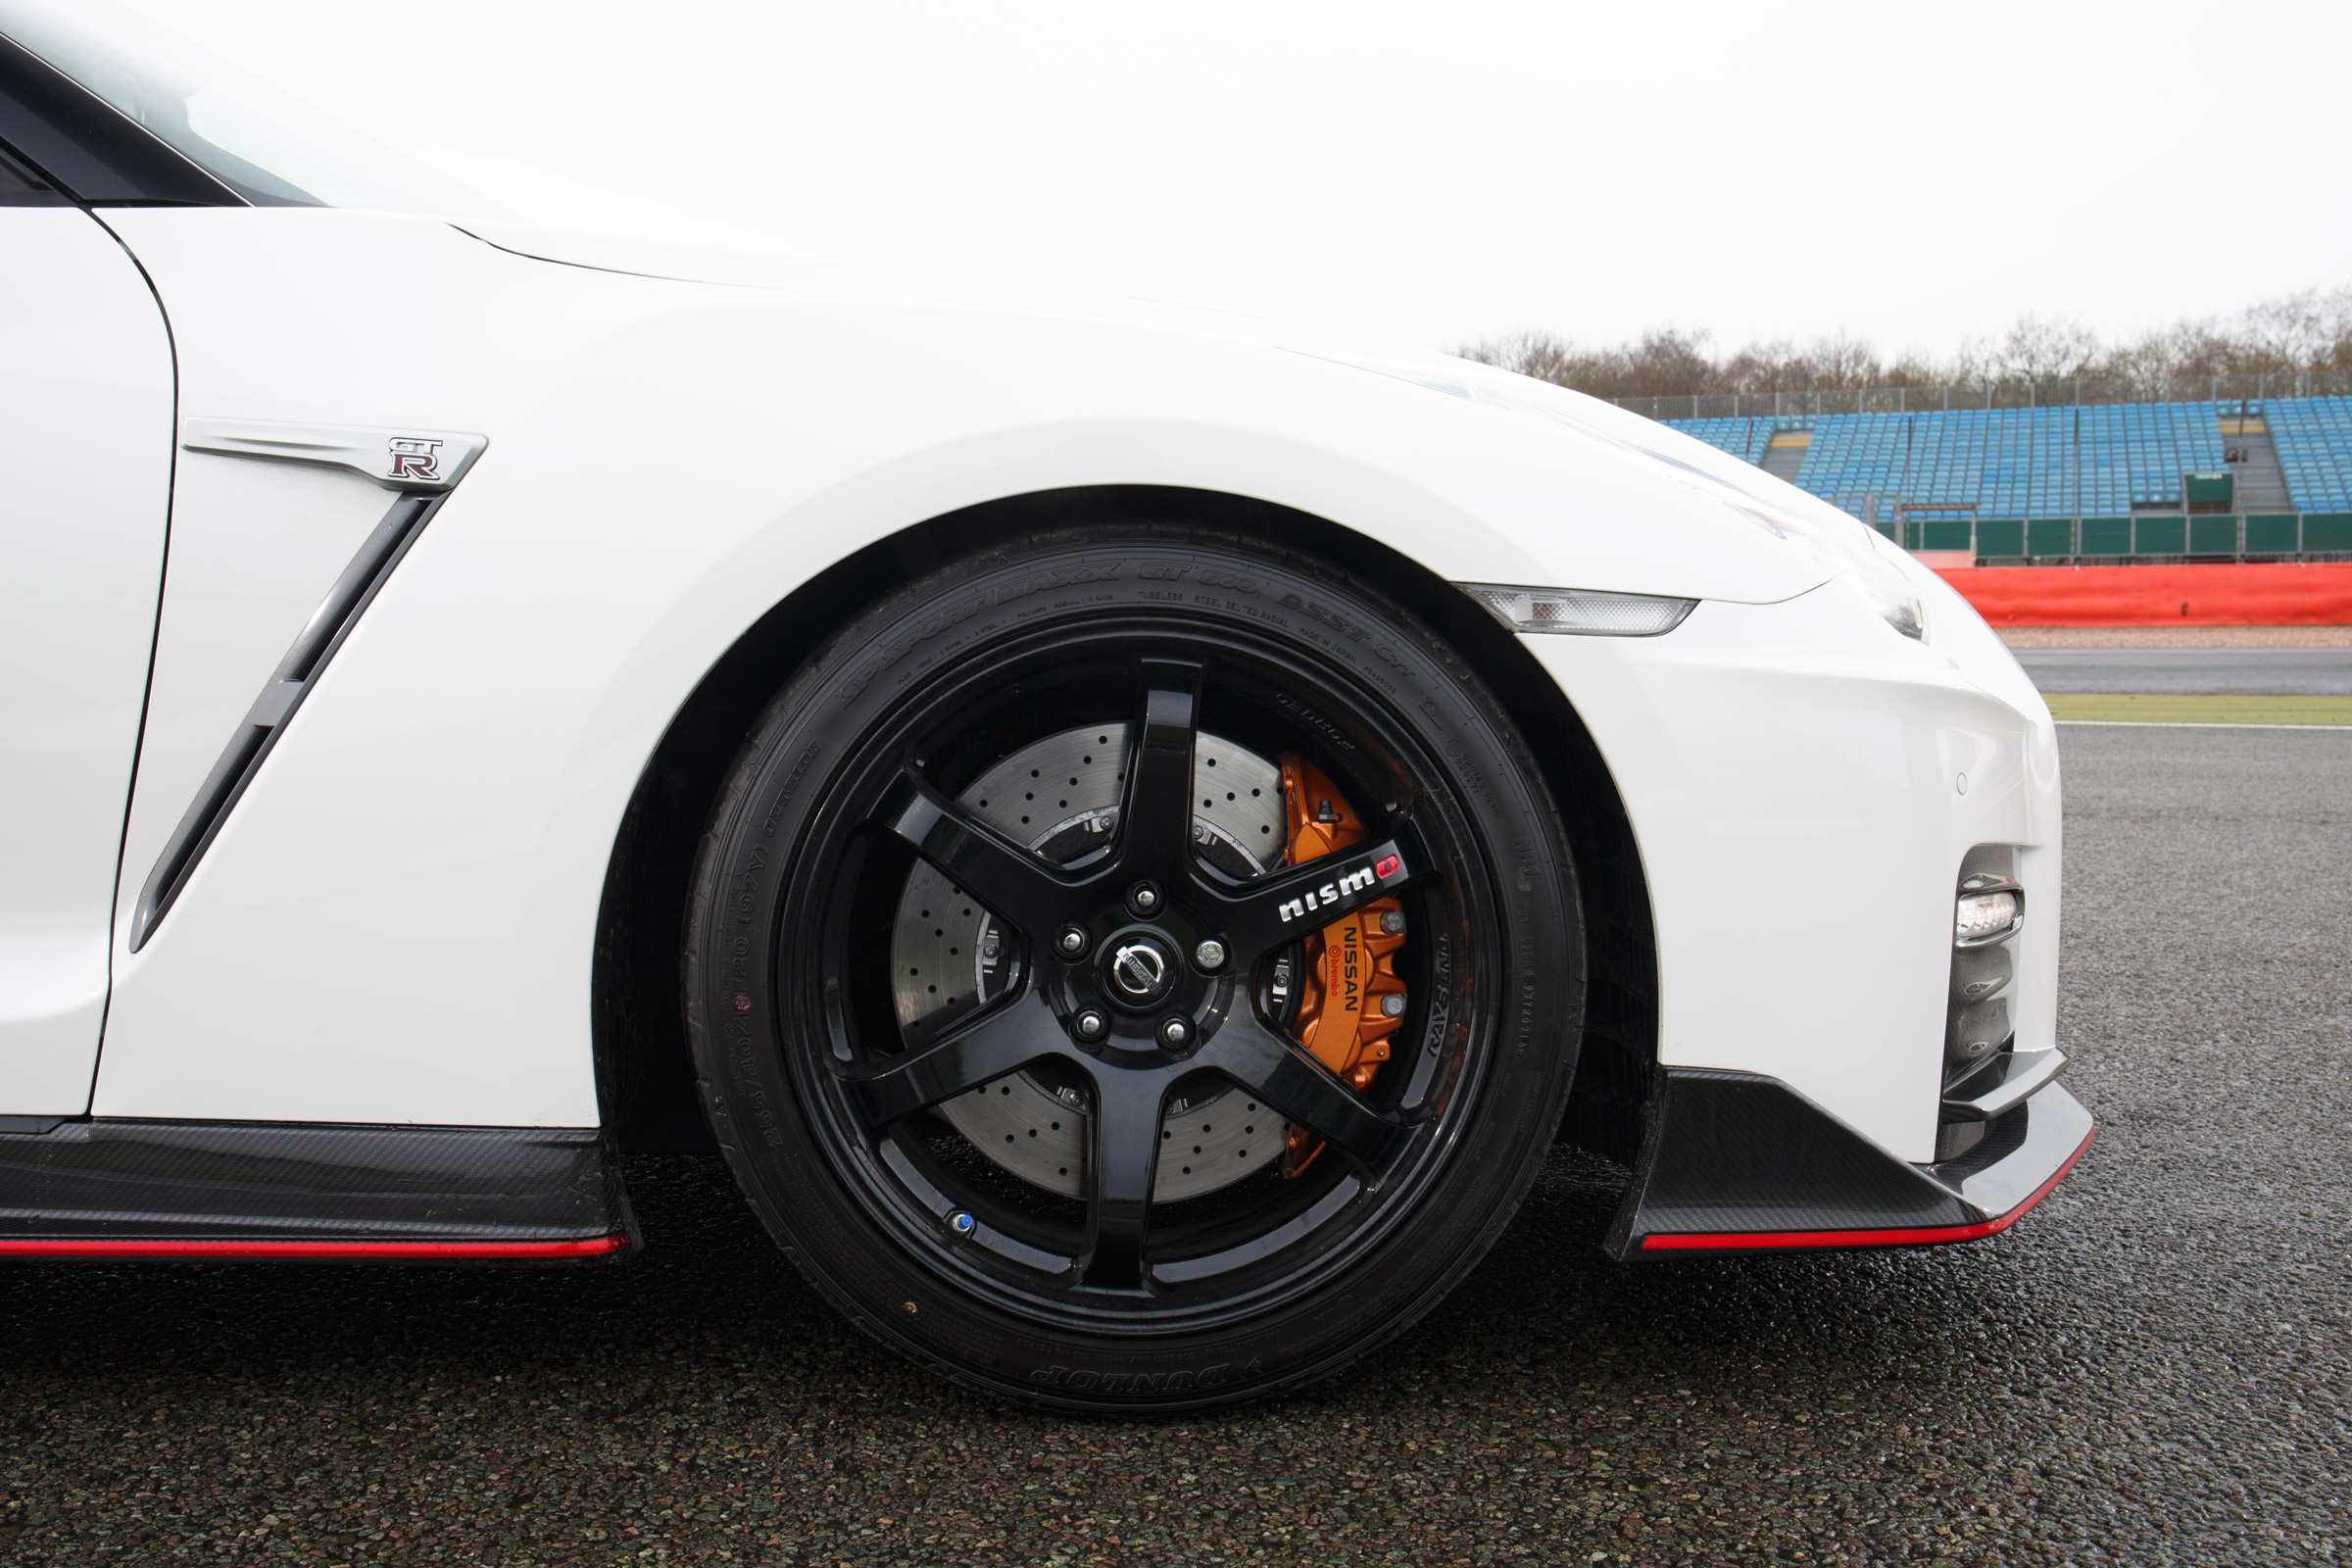 2017 Nissan GT R NISMO Exterior View Wheel (Photo 10 of 22)